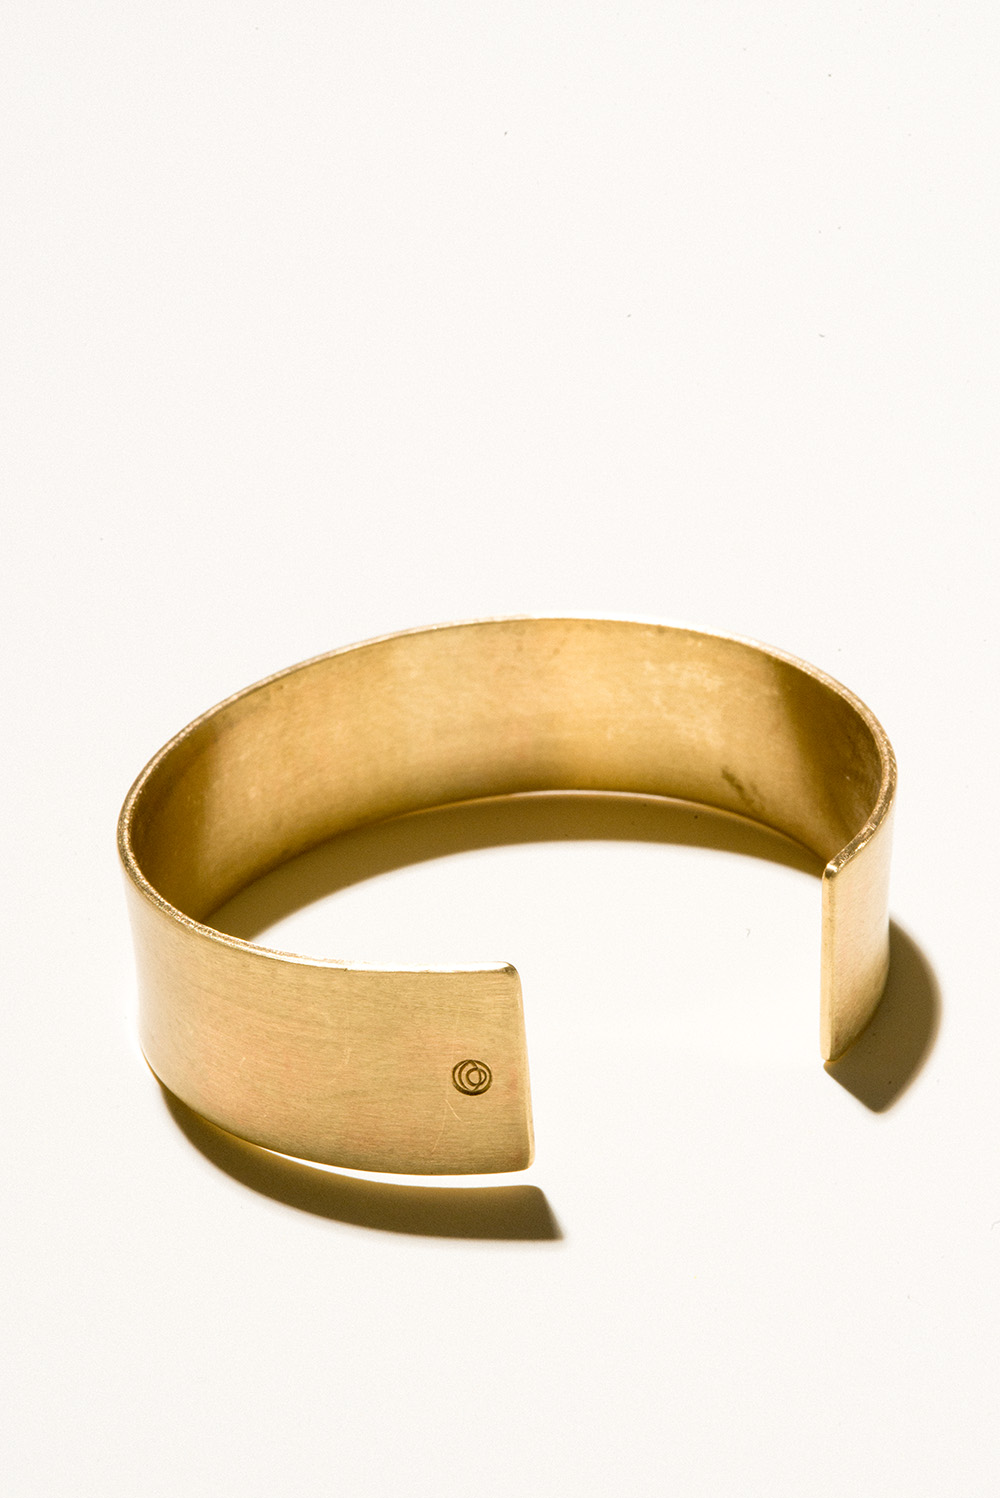 20 Brass Cuff - 20mm wideJewelers Brass with Lacquer FinishHand Smithed$100